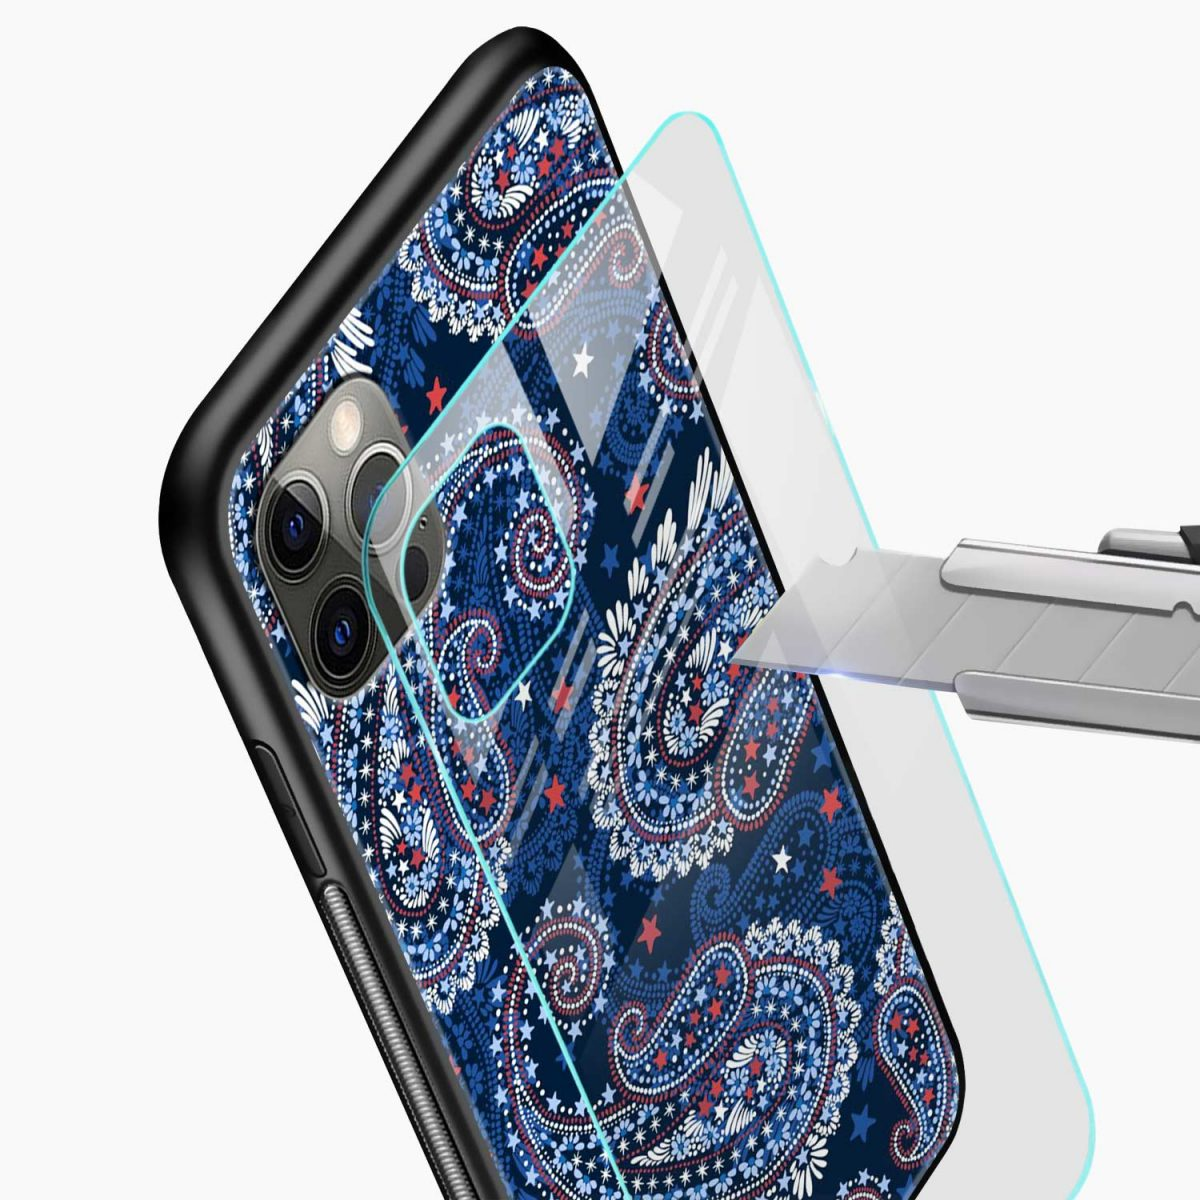 blue colored classical pattern iphone pro back cover glass view